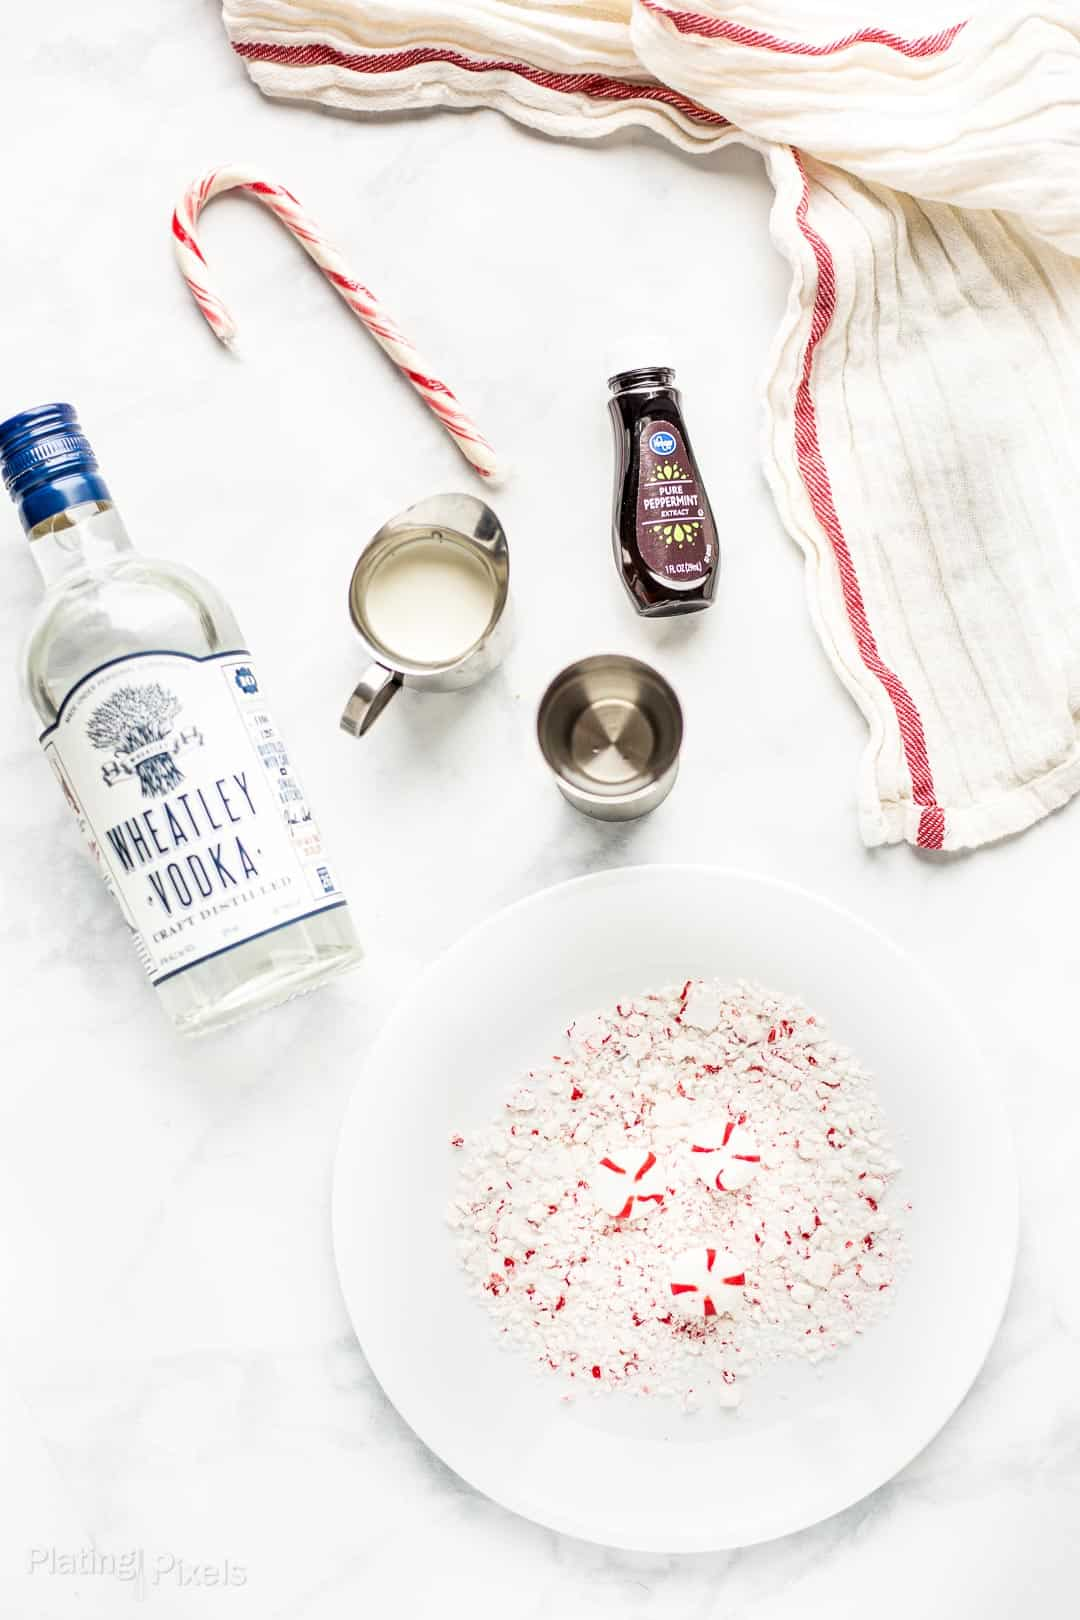 Ingredients to make a White Chocolate Peppermint Martini prepared on a counter